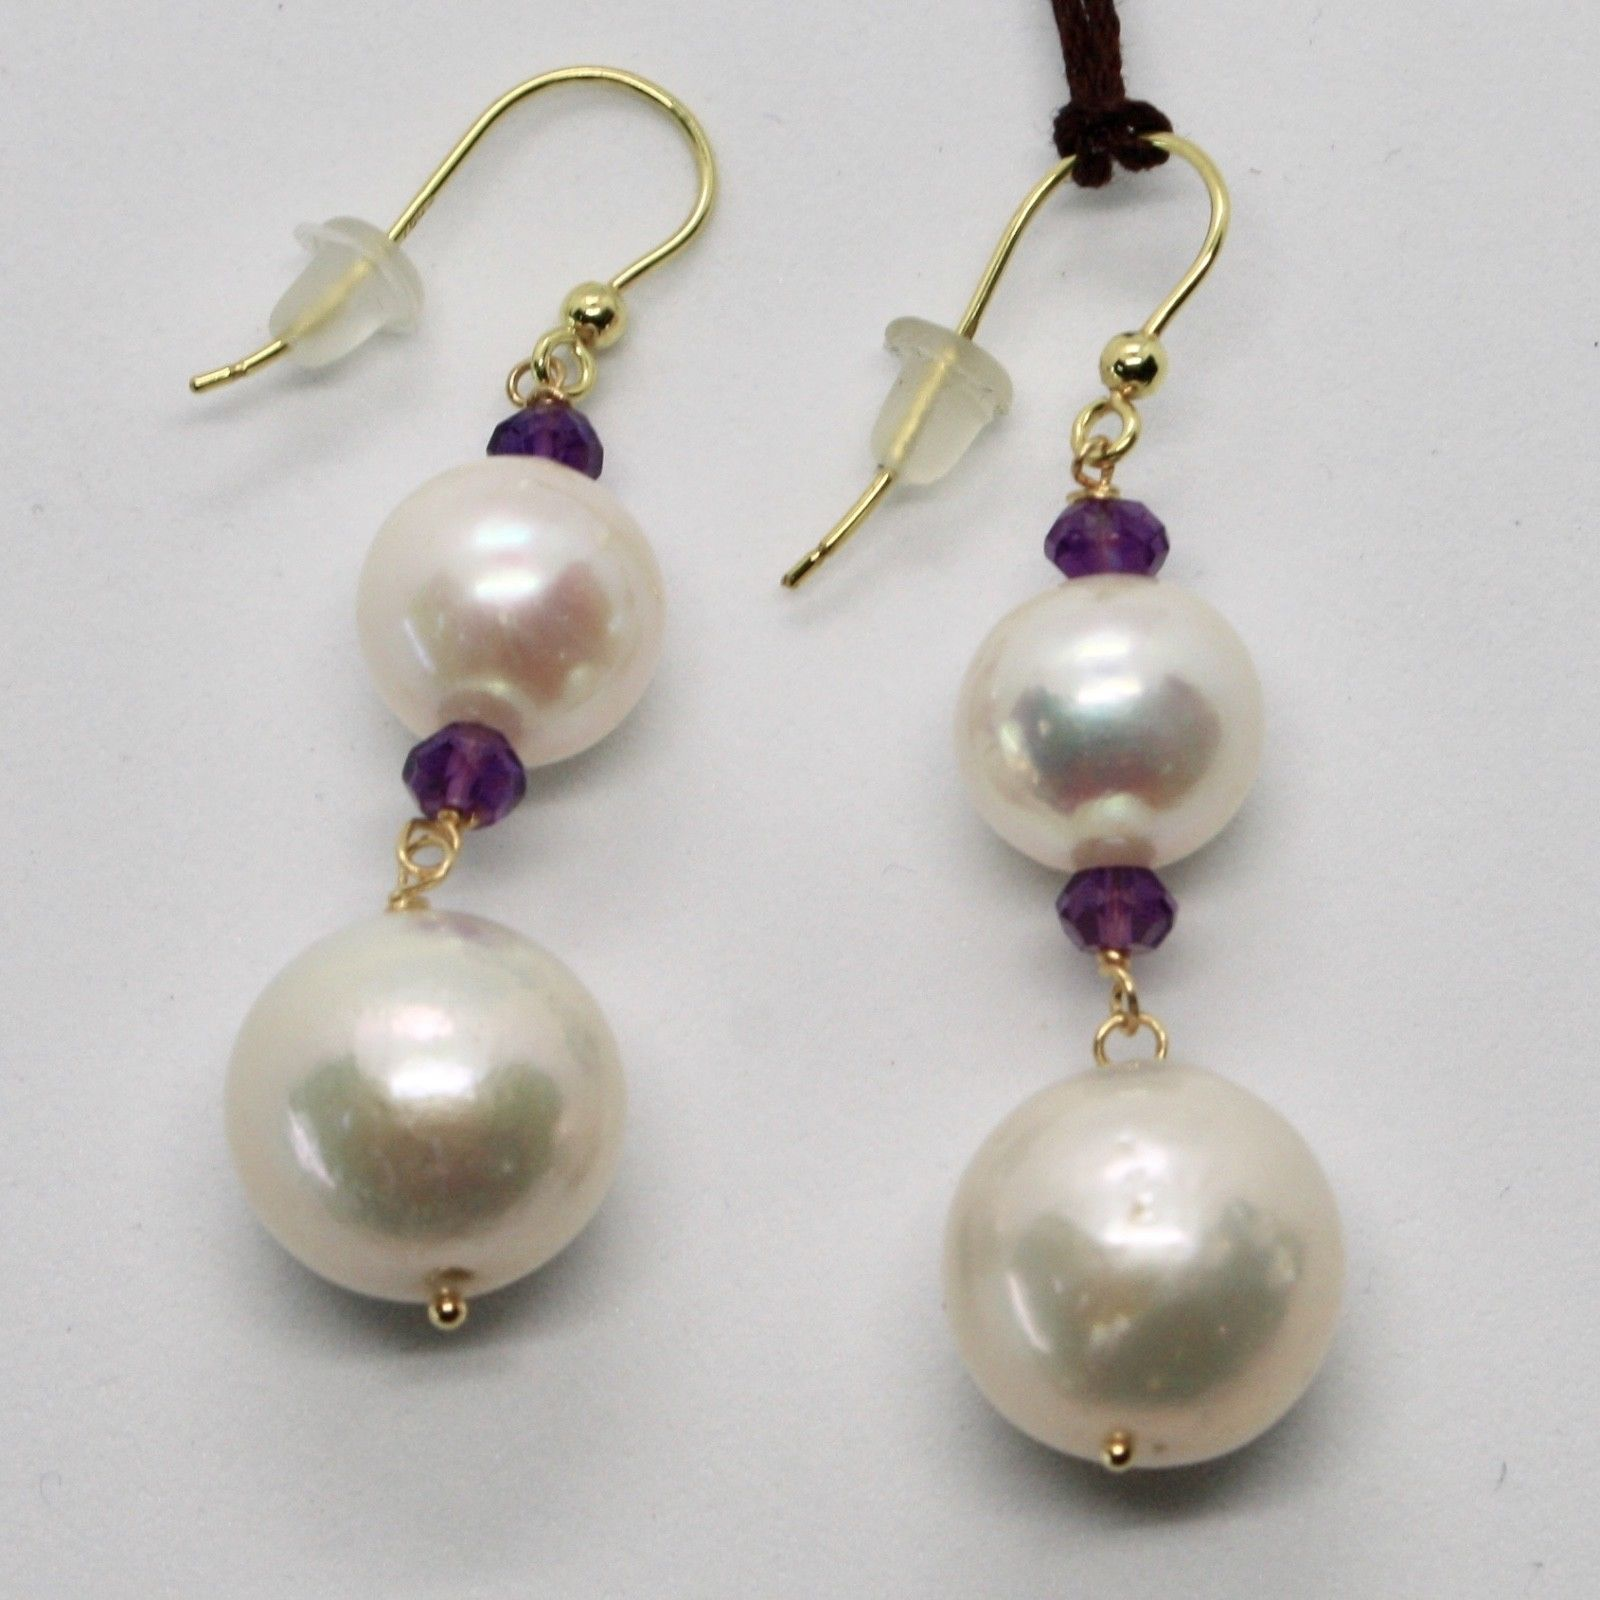 SOLID 18K YELLOW GOLD EARRINGS WITH WHITE FW PEARL AND AMETHYST MADE IN ITALY